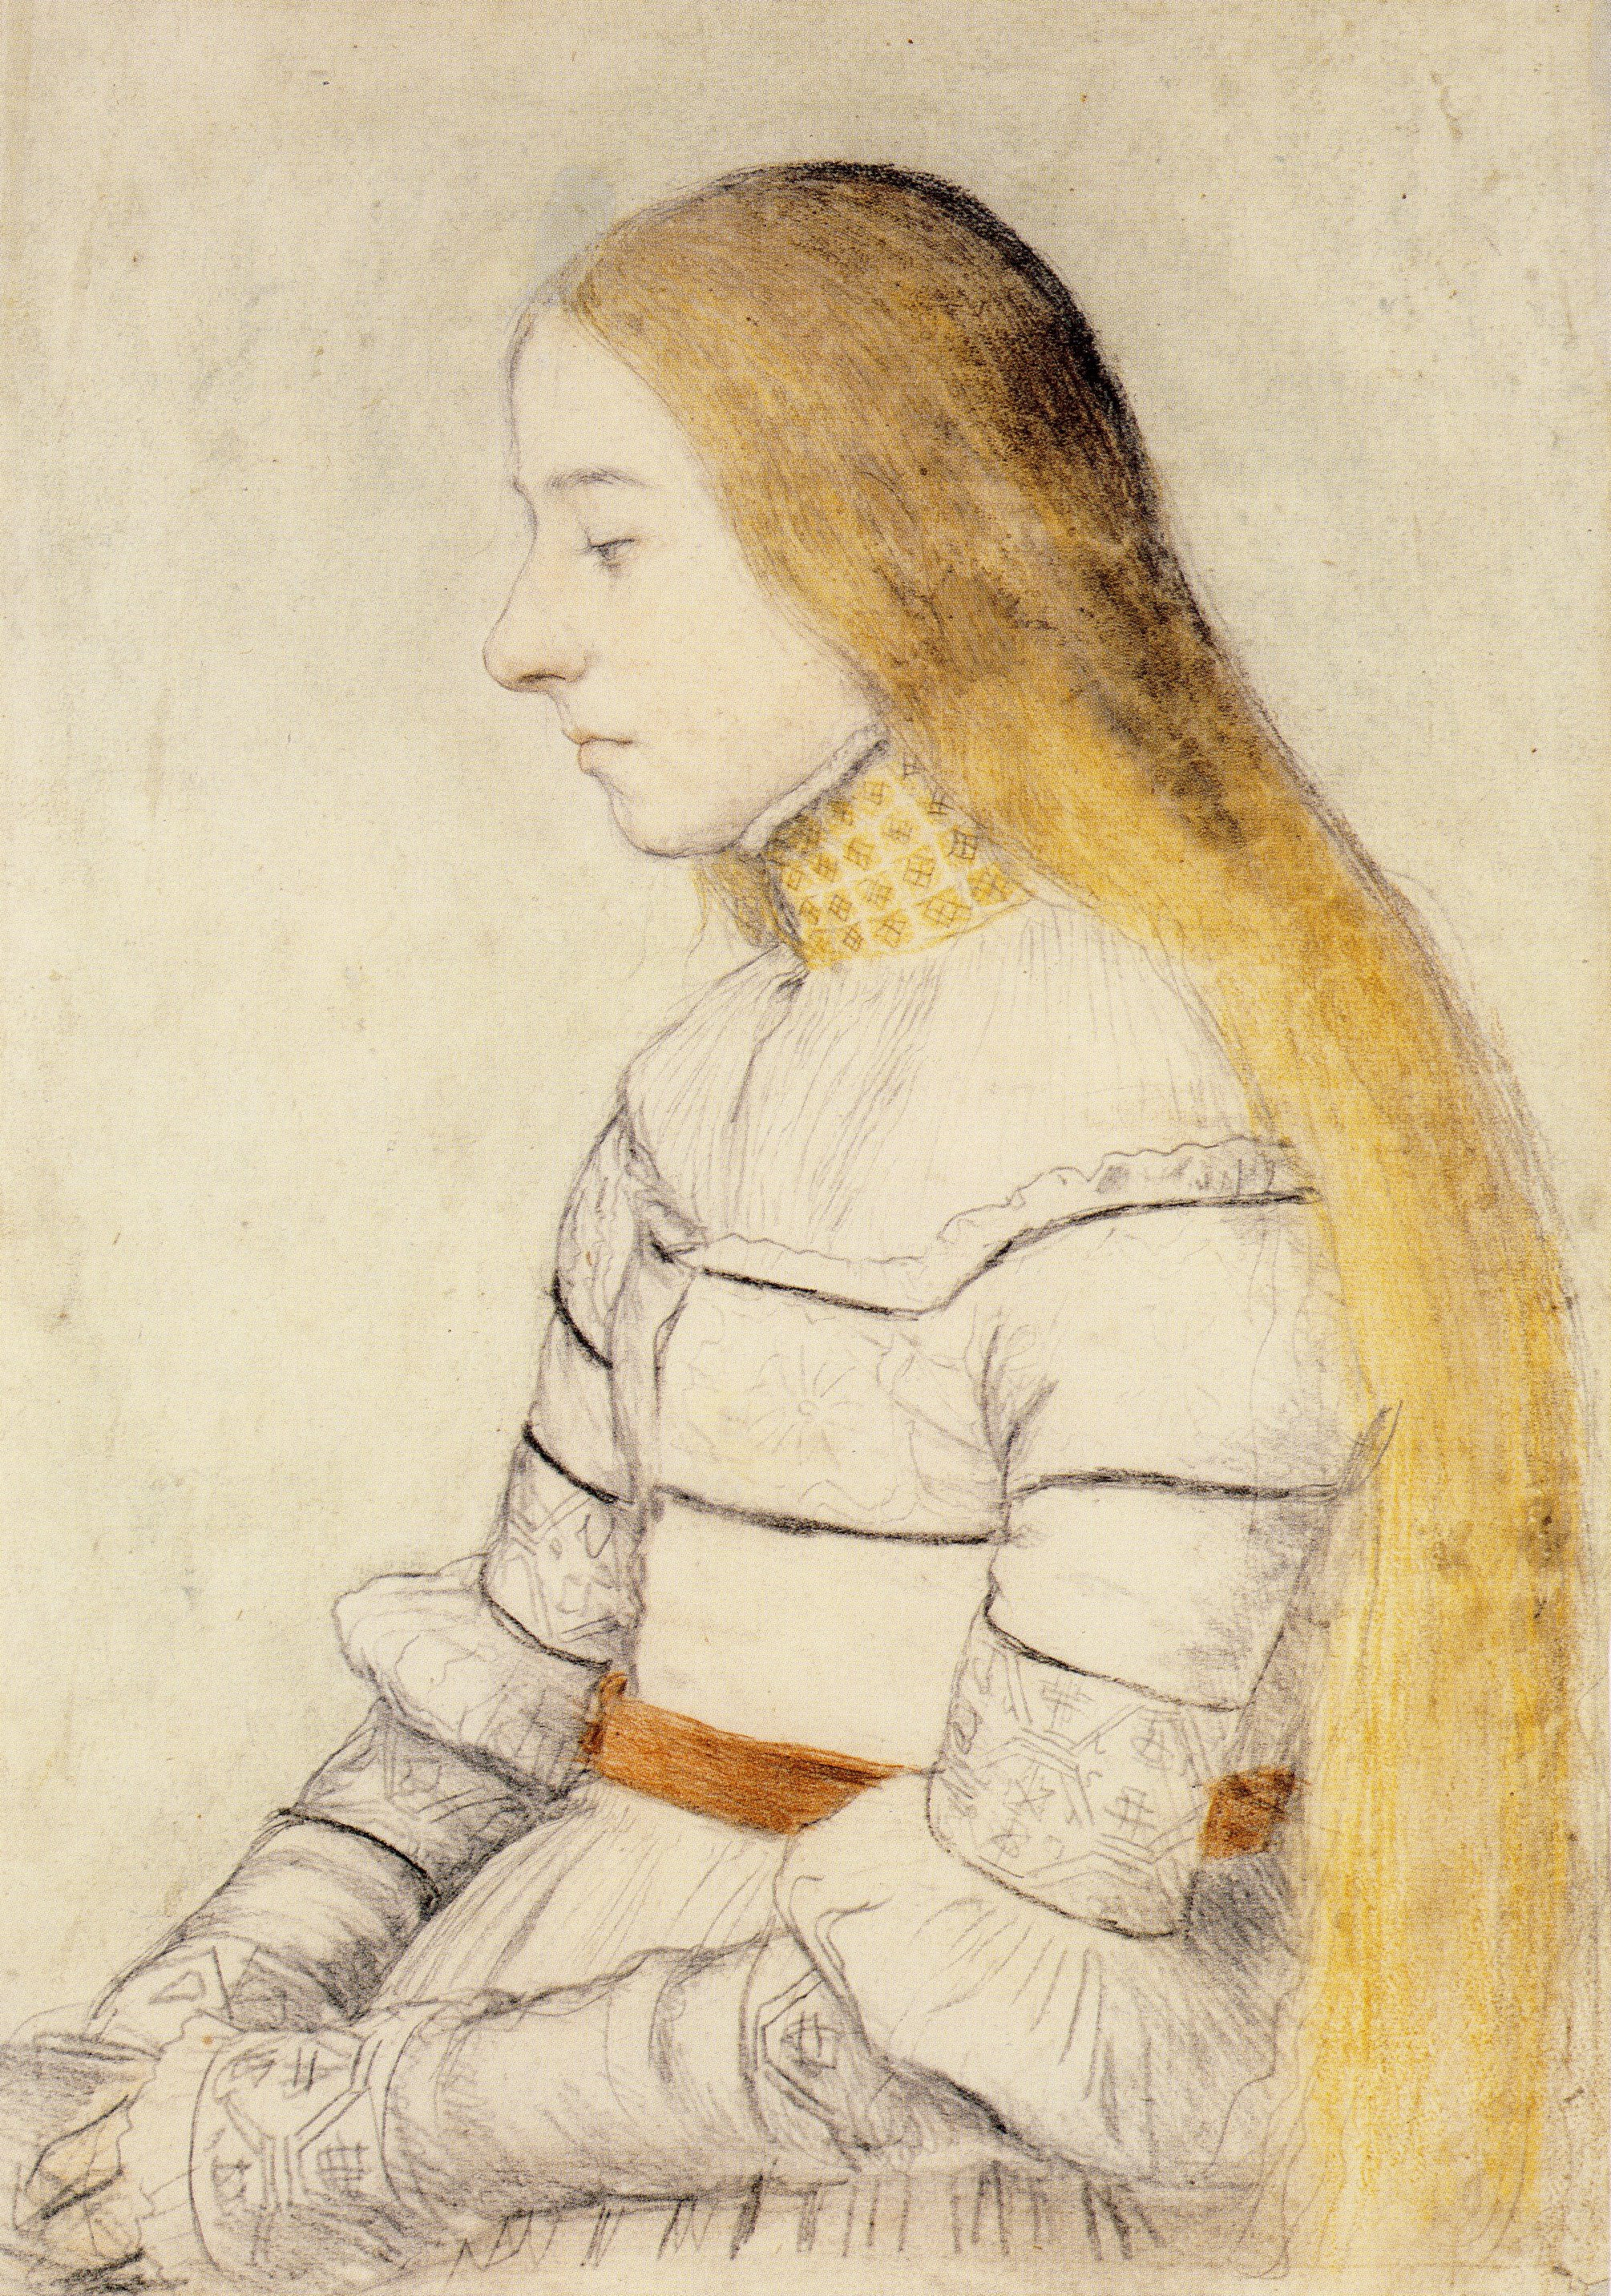 Anna Meyer, daughter of Jacob Meyer zum Hasen, 1516